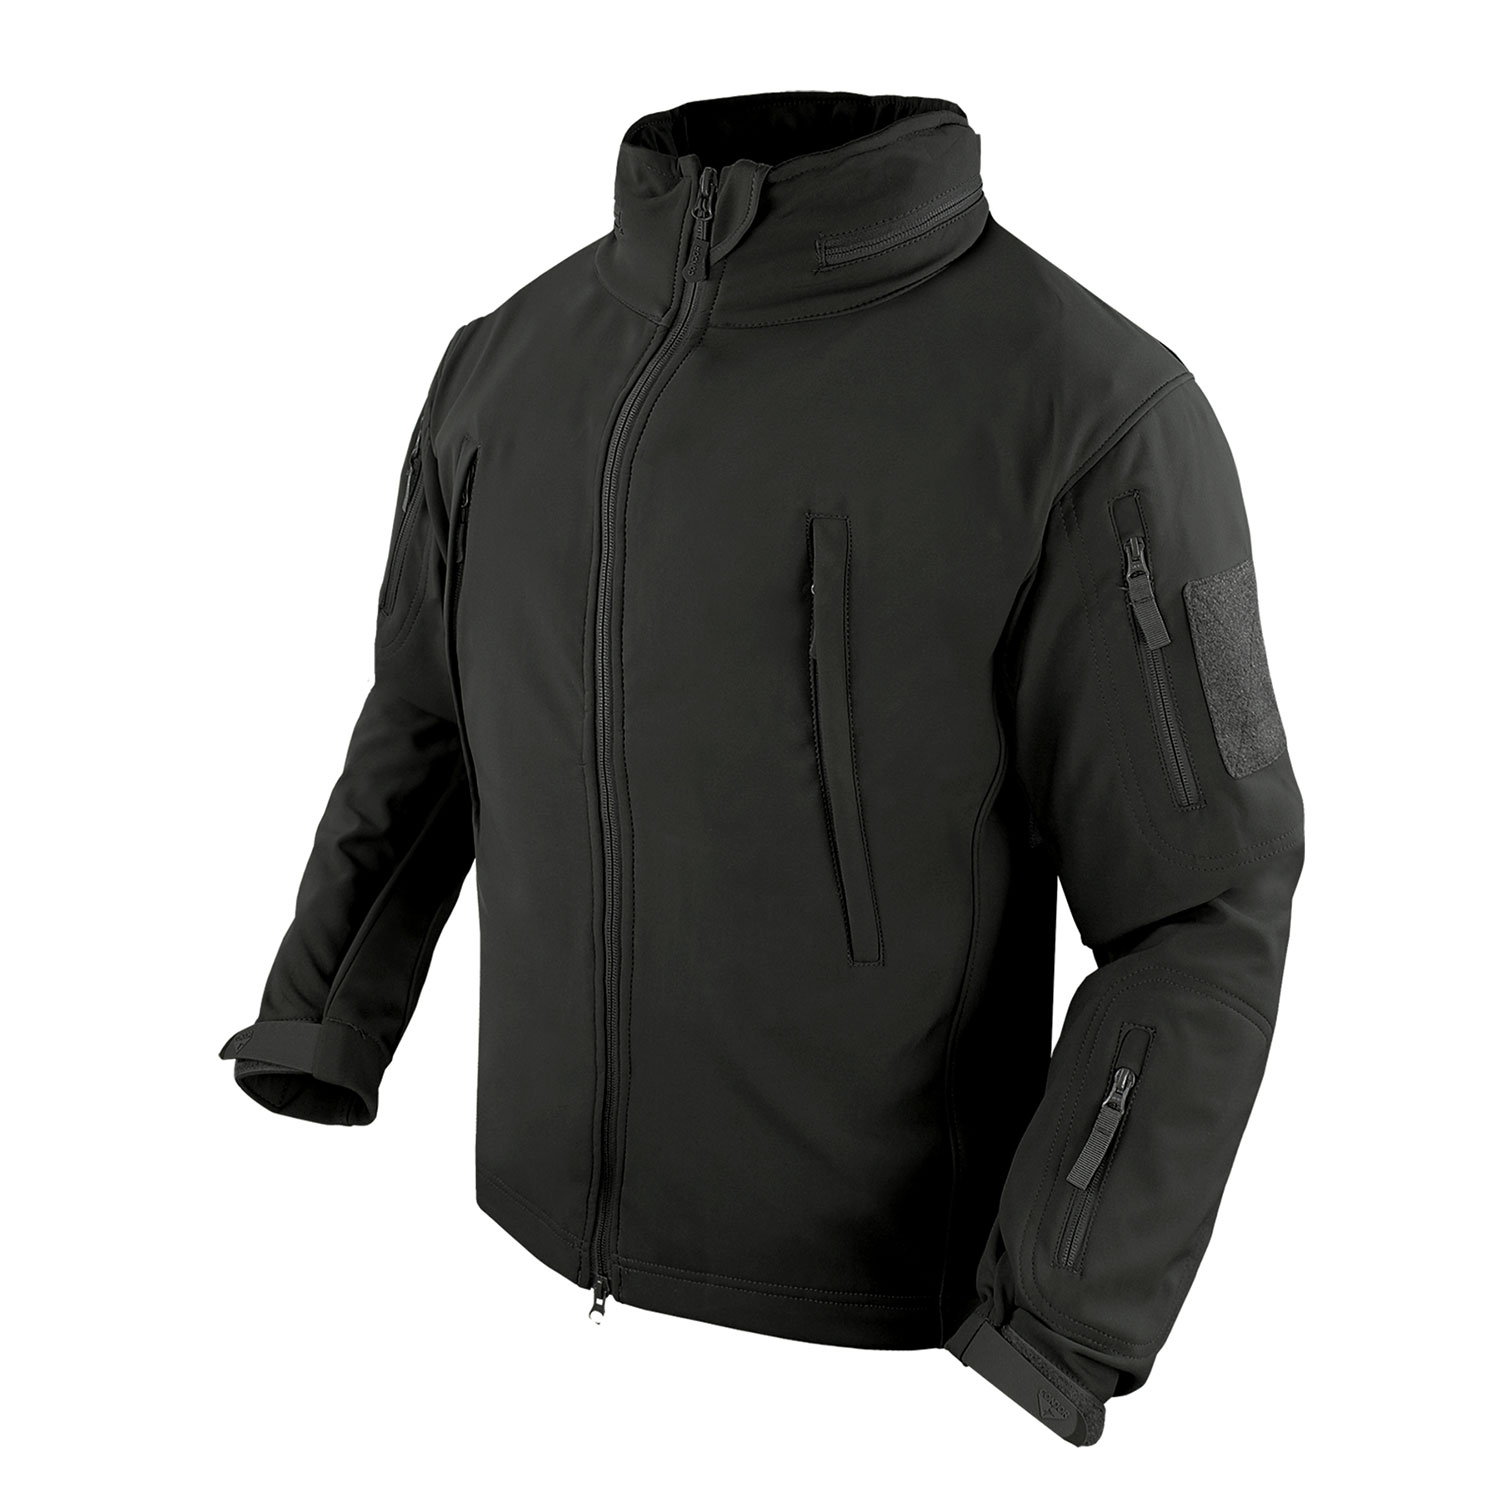 Condor Summit Softshell Jacket with Hood